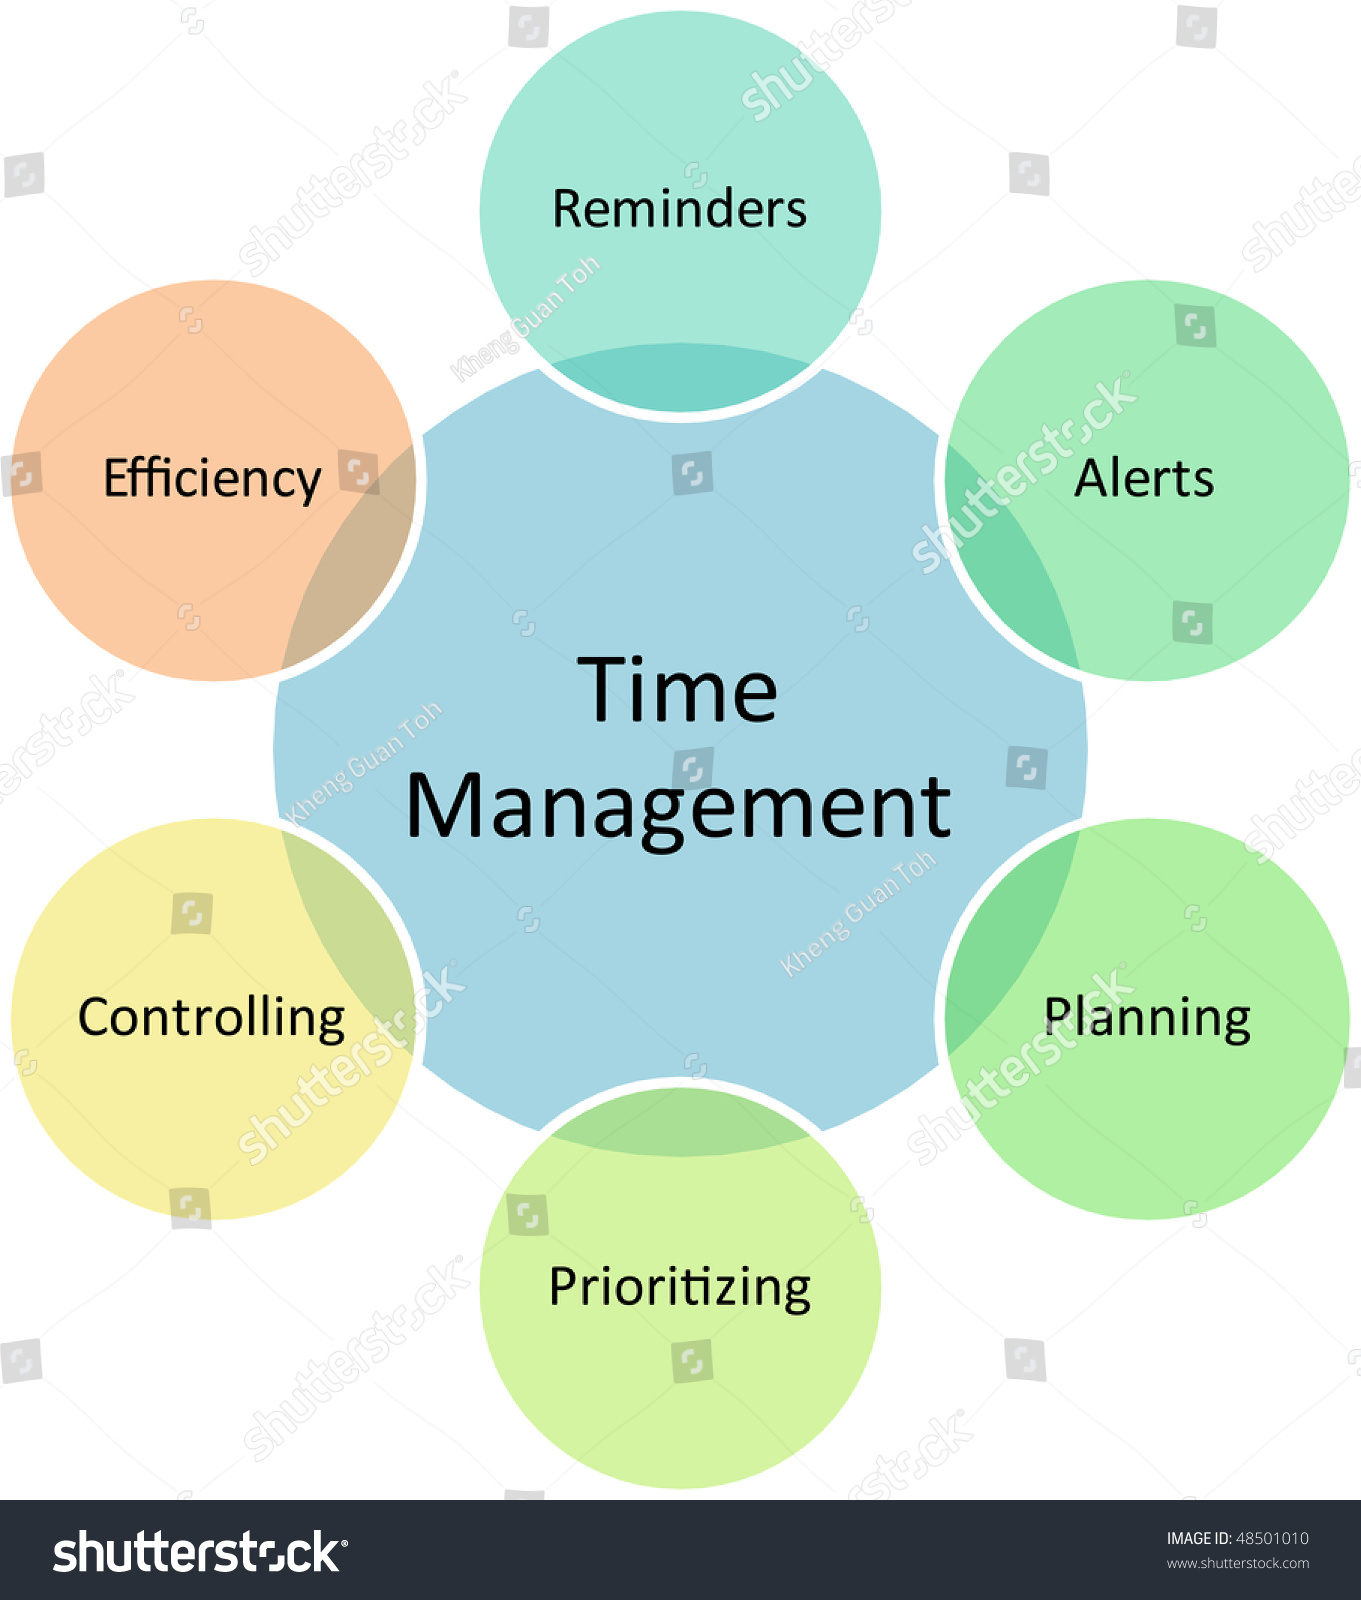 Time management business strategy concept diagram stock time management business strategy concept diagram illustration pooptronica